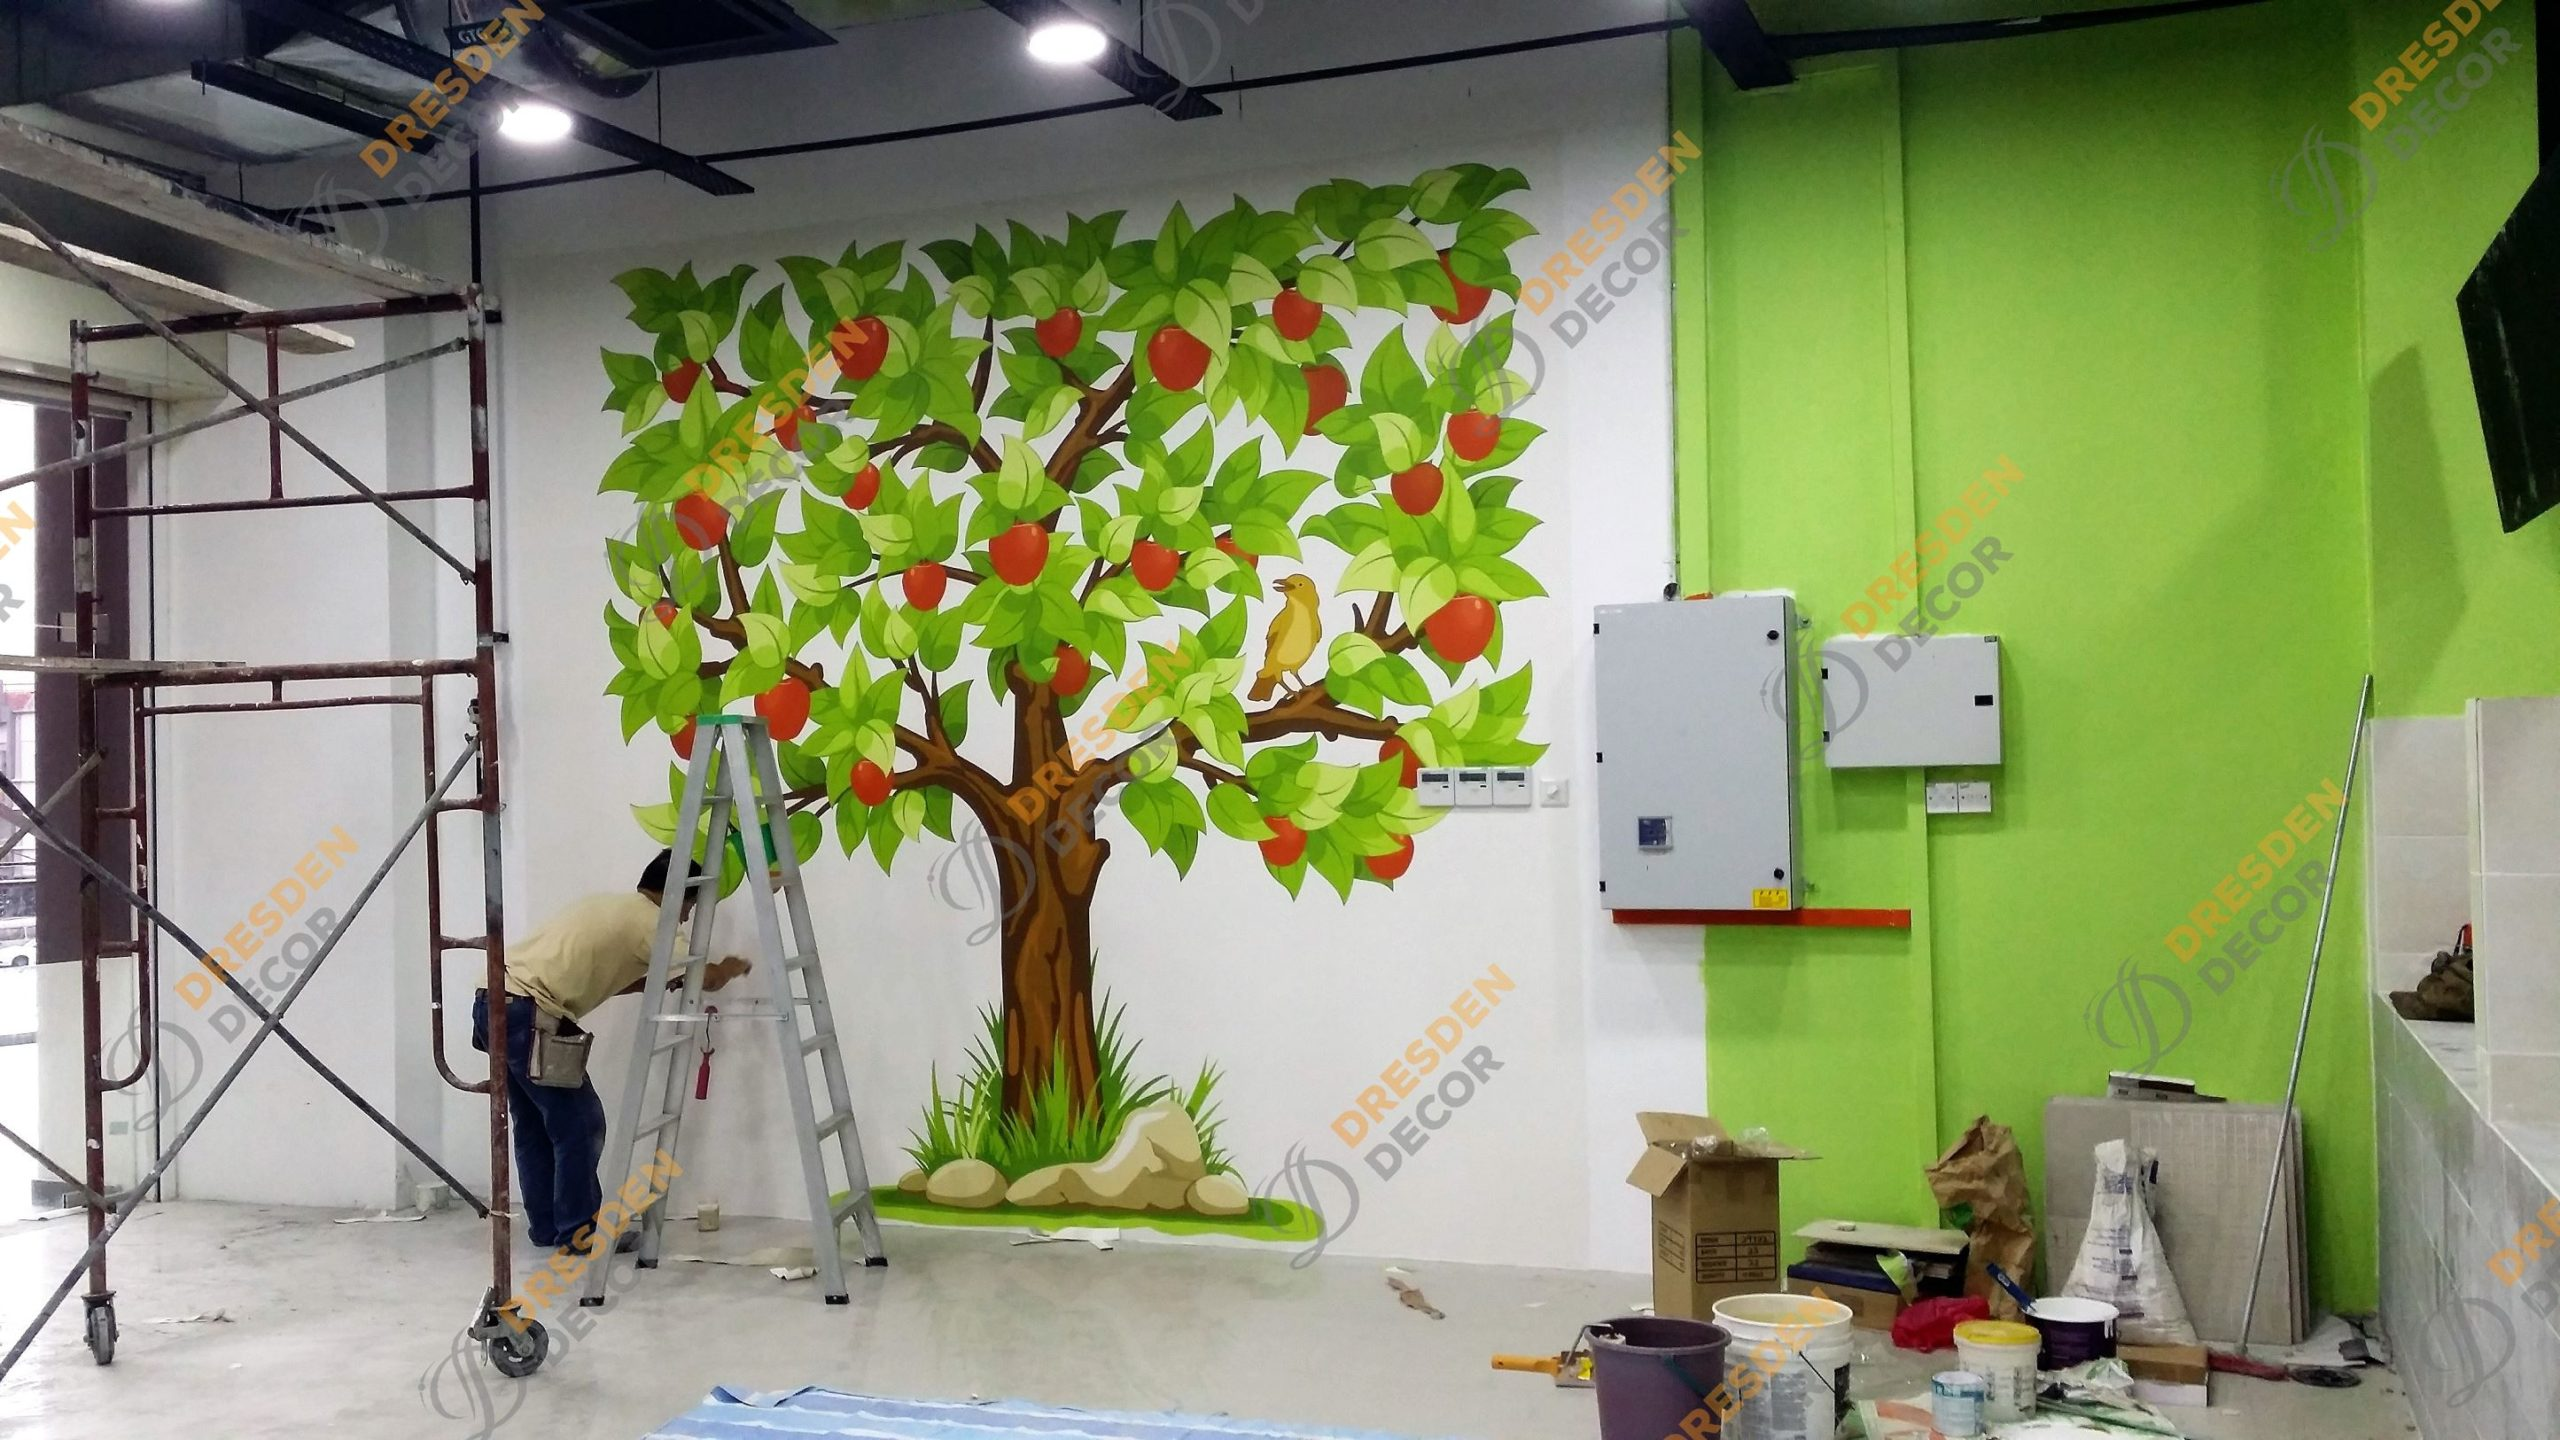 Amerin Mall Food Court – Photo Mural